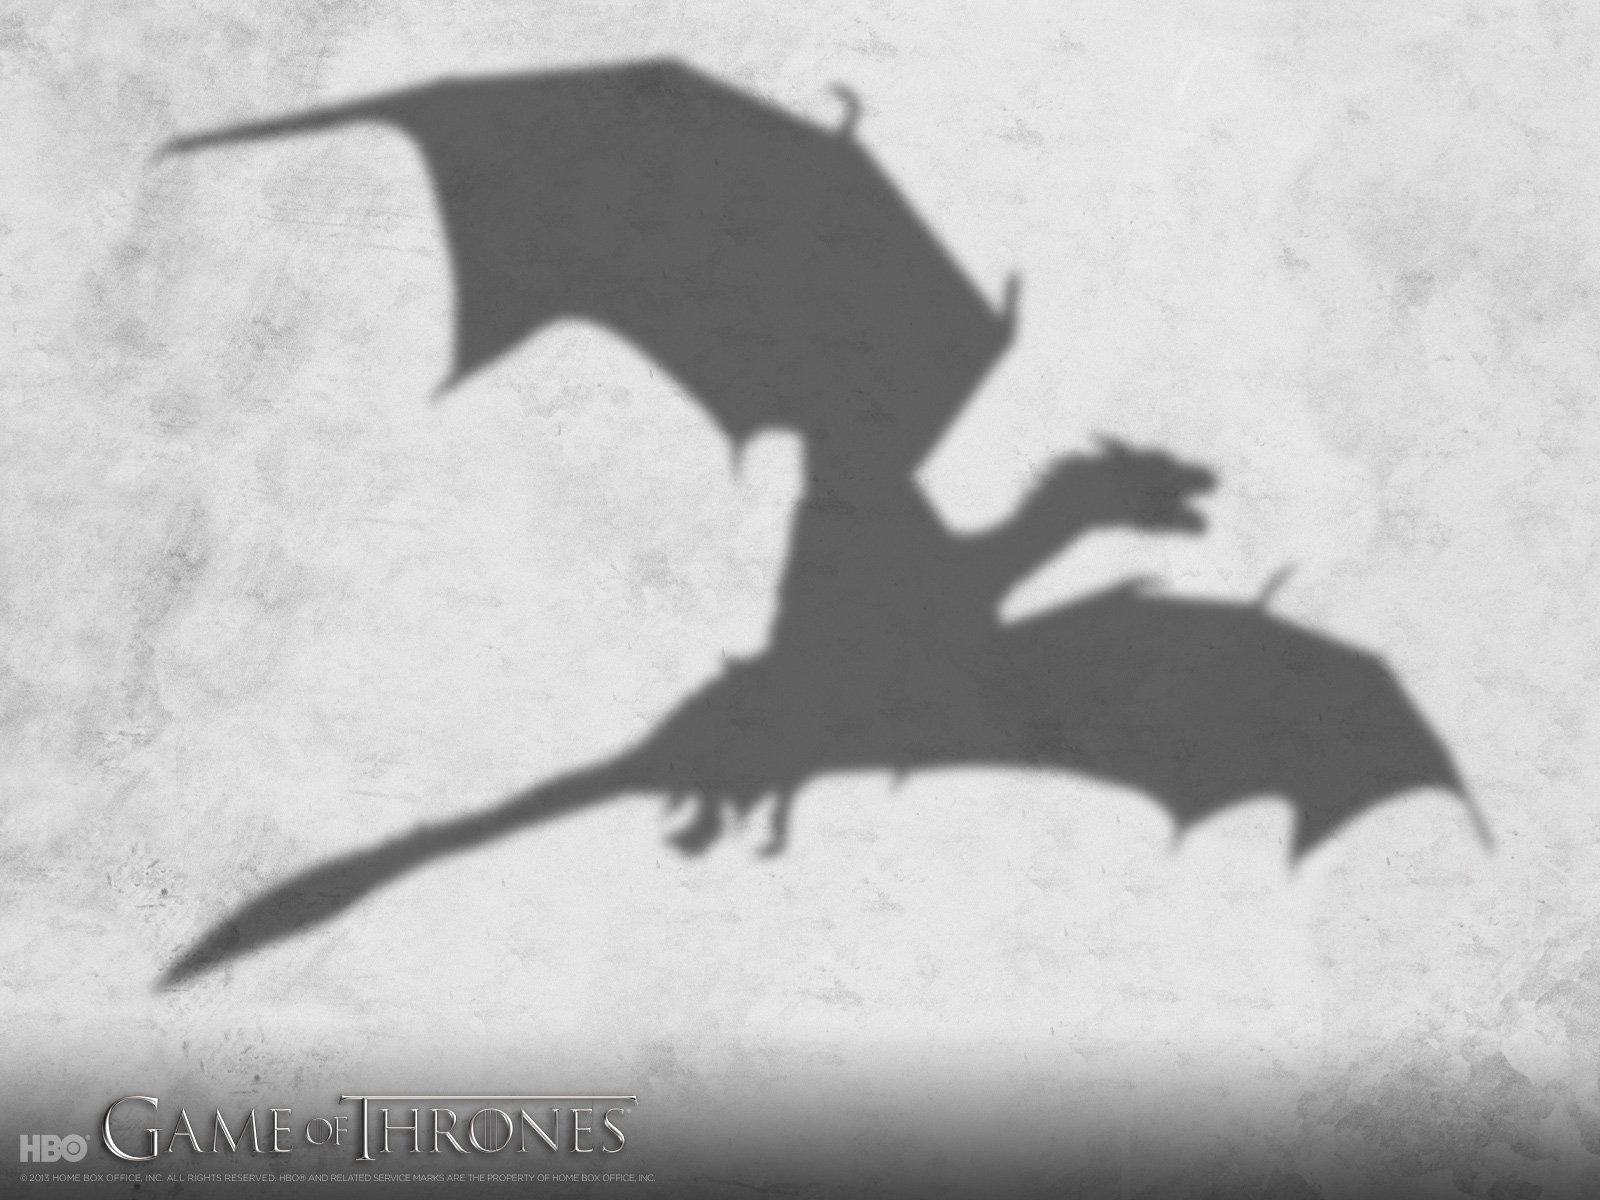 wallpaper game of thrones logo crown game of thrones logo game of 1600x1200